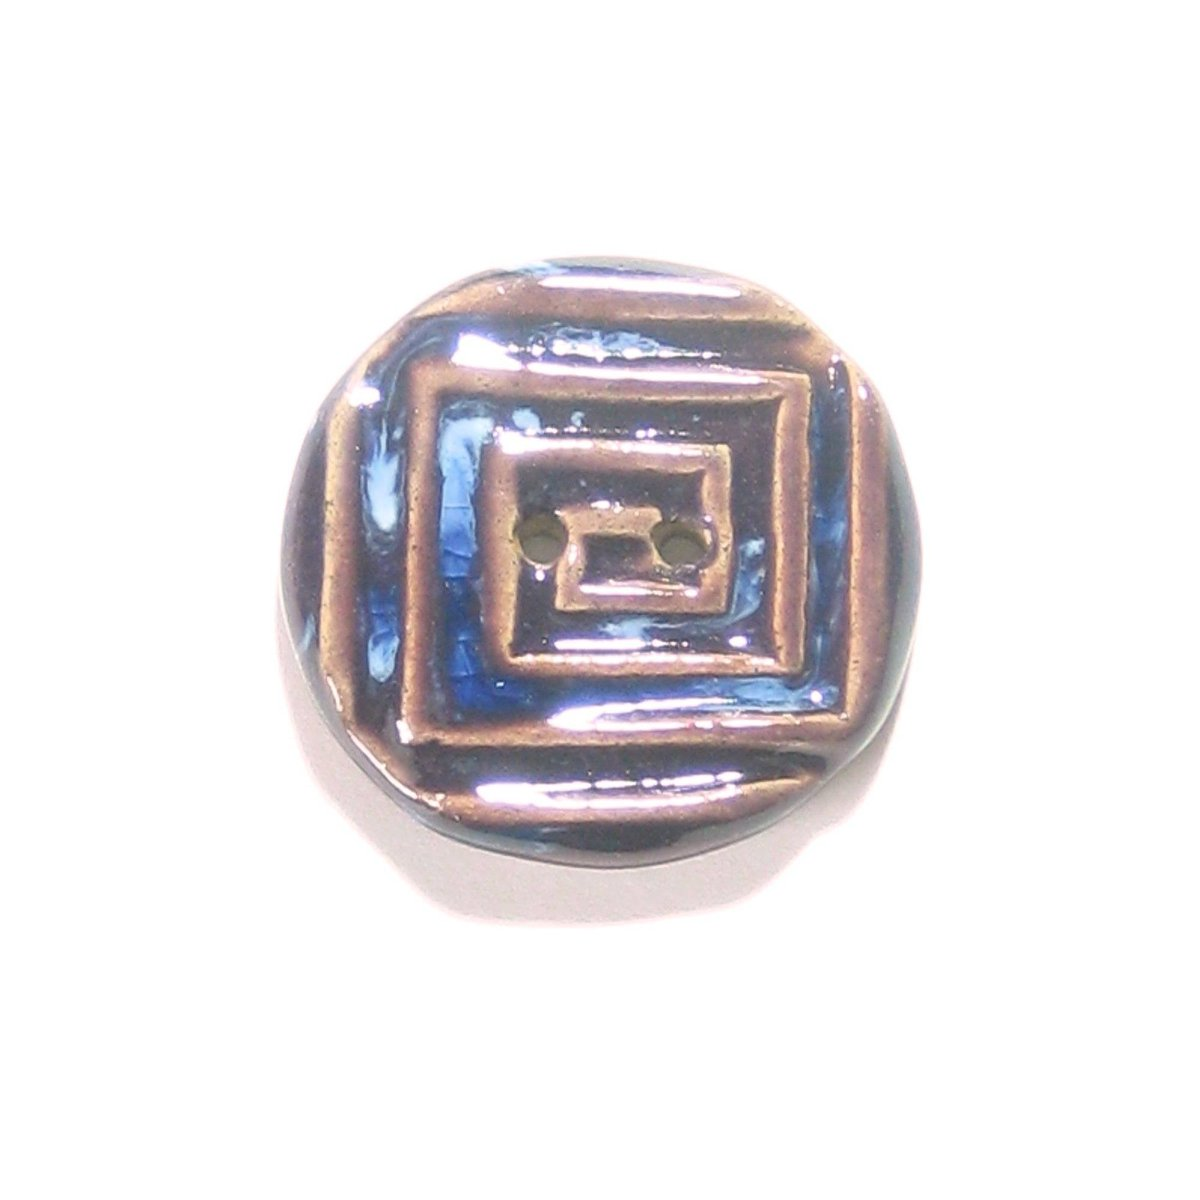 Rustic Round Blue Purple Square Design Button, (1) Two Hole One Inch …  http:// tuppu.net/9f8ebe3a  &nbsp;   #epiconetsy #etsymntt<br>http://pic.twitter.com/lYbNEewf5E